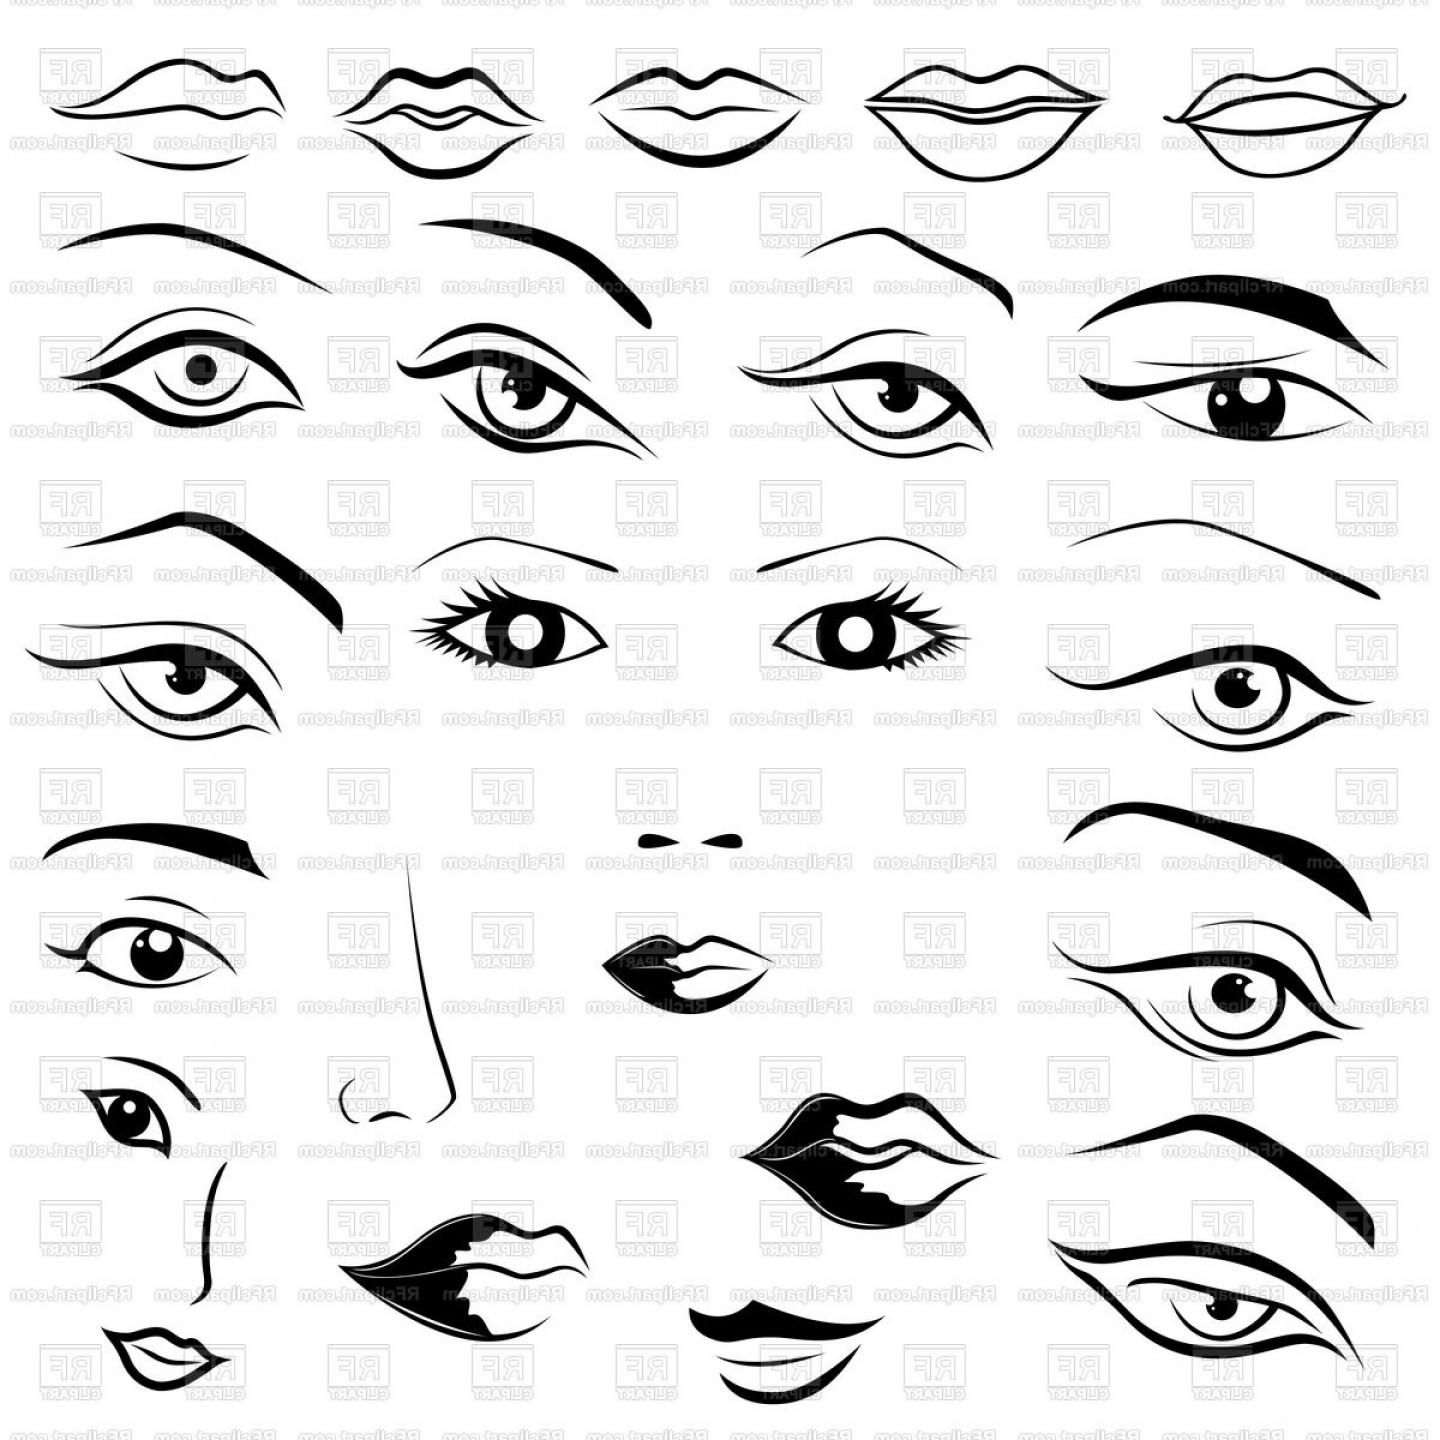 Female Parts Vector: Womans Face Parts Eyes Lips Eyebrows And Noses In Sketching Style Vector Clipart